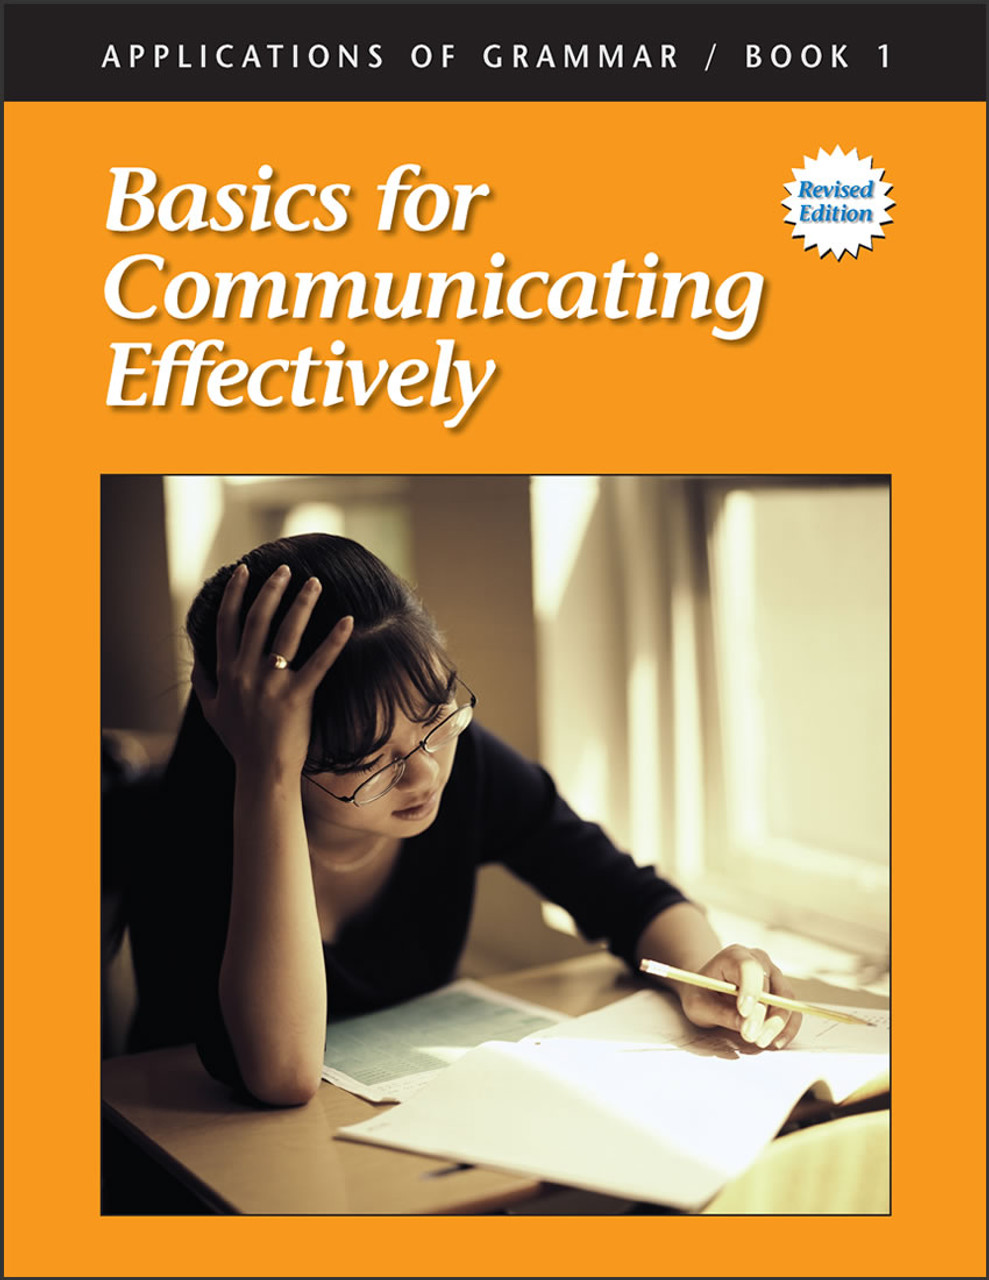 Applications of Grammar 1: Basics for Communicating Effectively, Revised edition